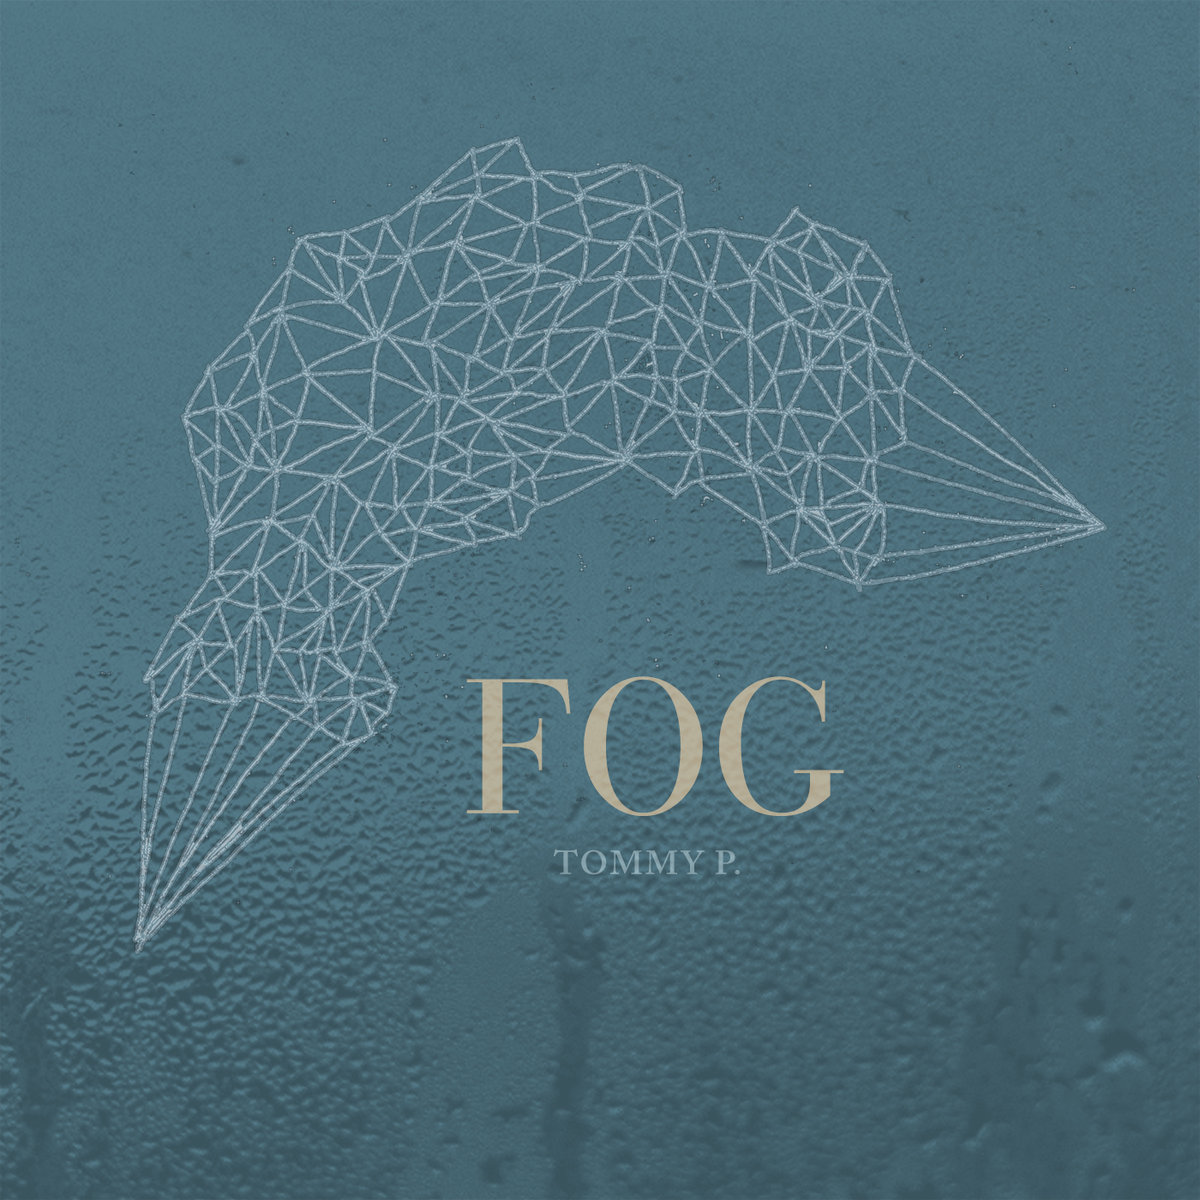 Tommy P. - Hemingway @ 'Fog' album (11th ave records, 11thaverecords 11th avenue)